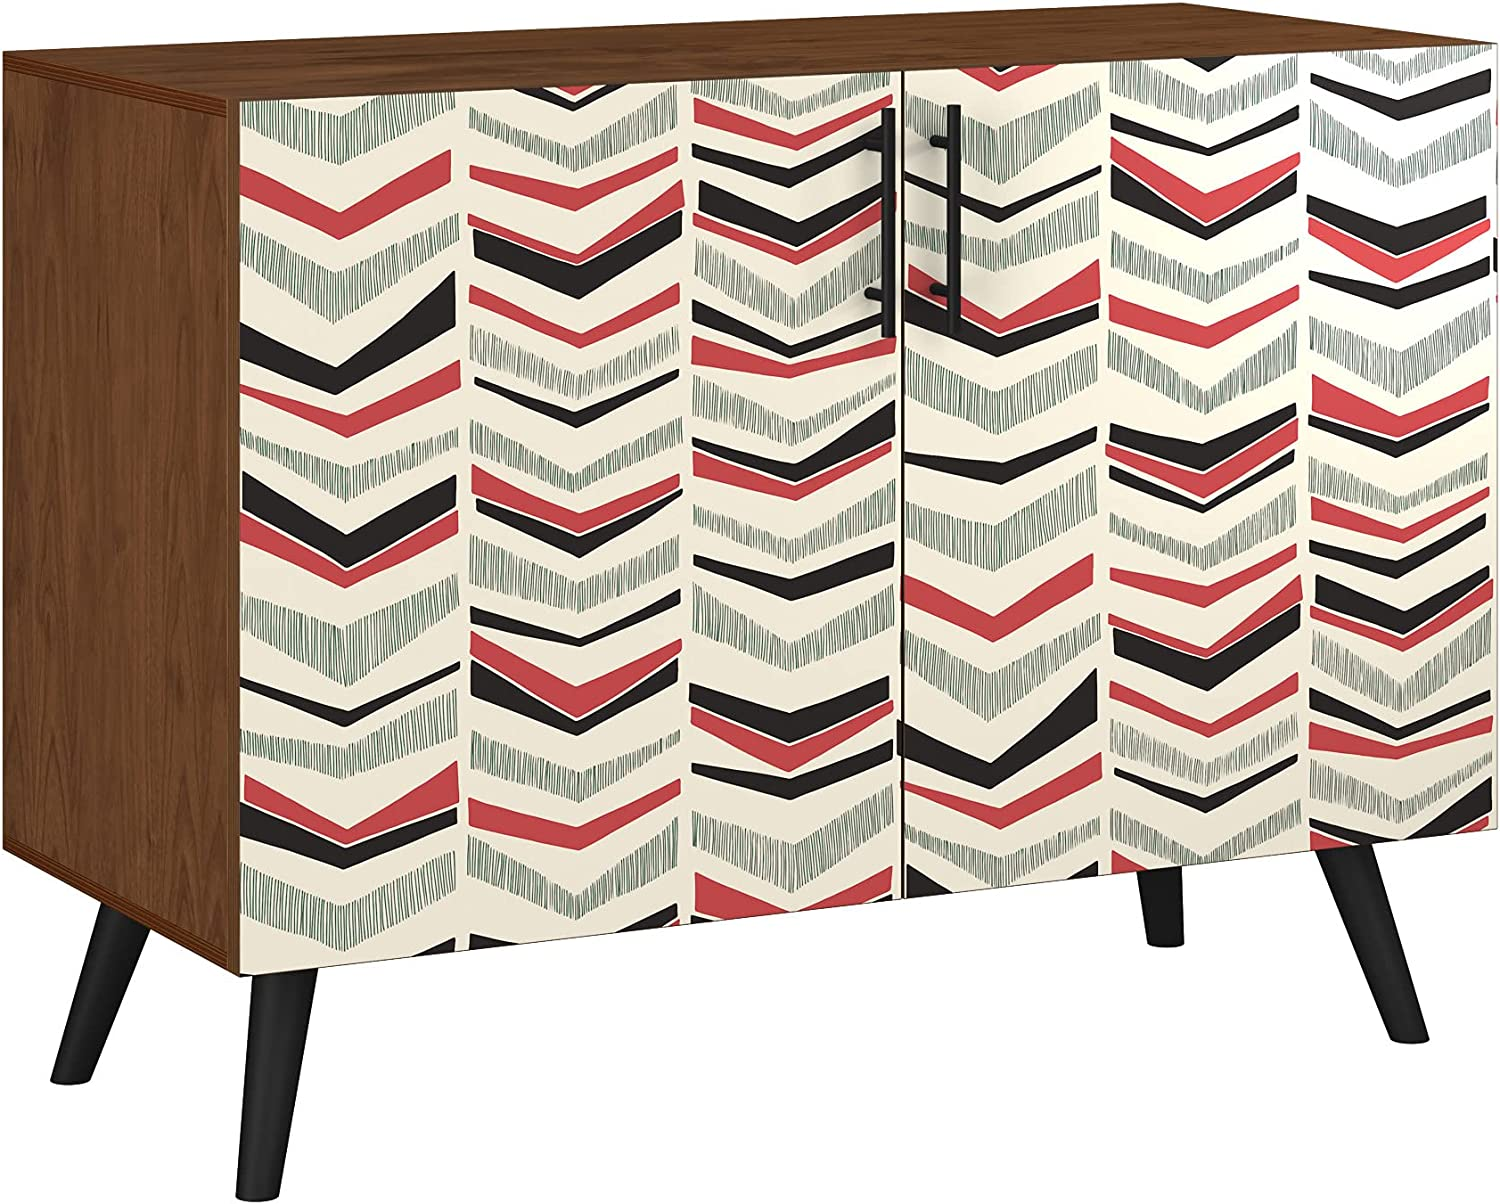 Poppy Indefinitely Credenza - Walnut Sadie Design Base 5 11 in Colors Style New Orleans Mall